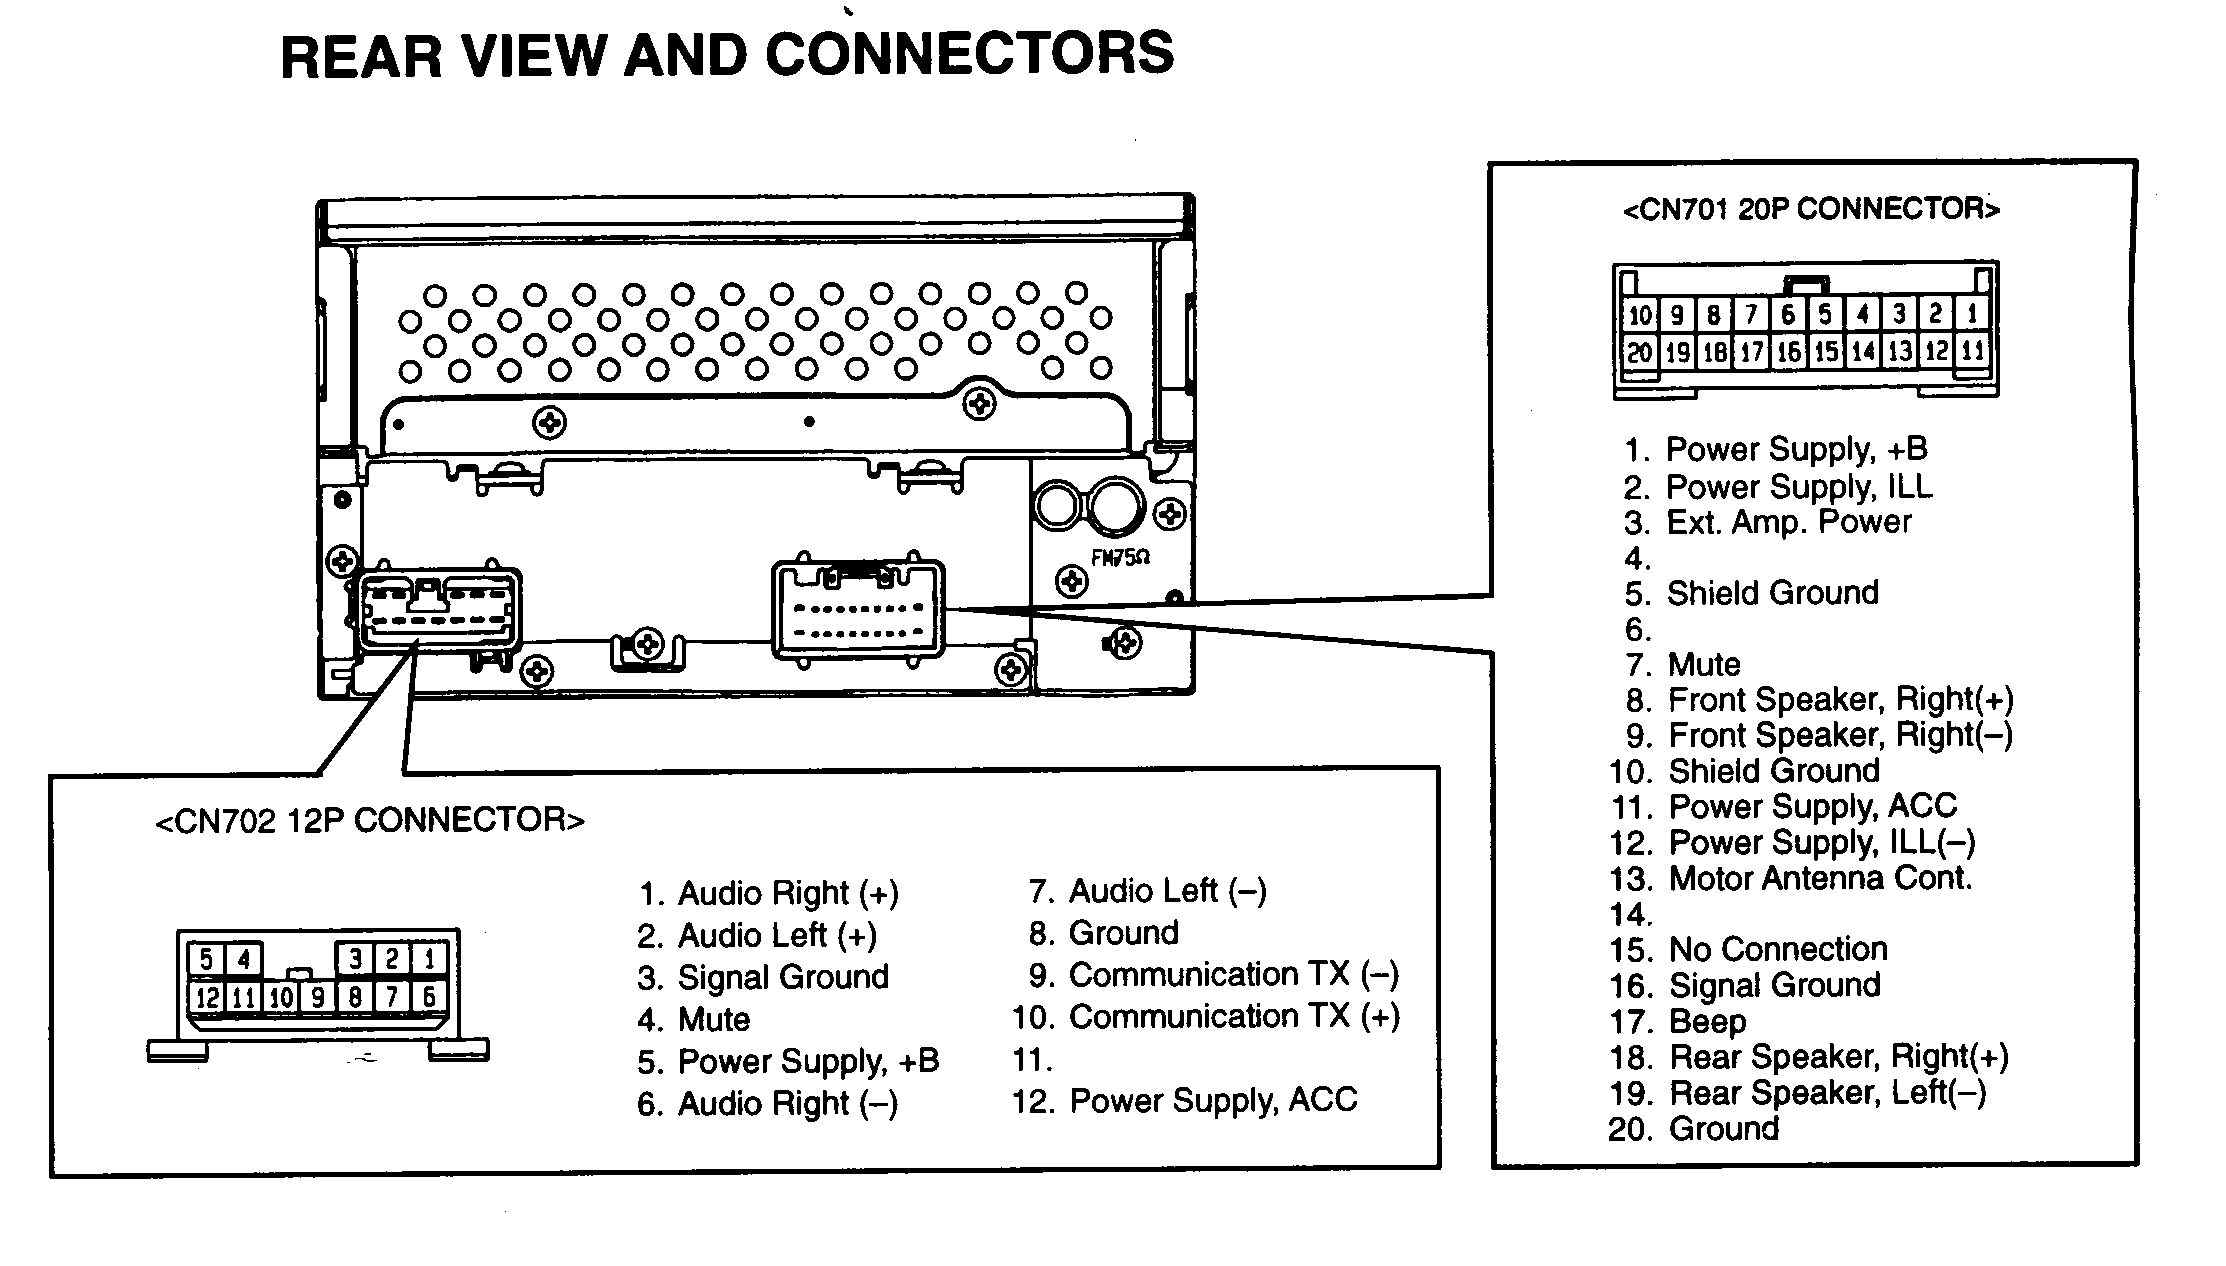 WireHarnessToyota03210201 car stereo help toyota car audio stereo remove, replace and repair 2016 Toyota Avalon Wiring-Diagram at soozxer.org